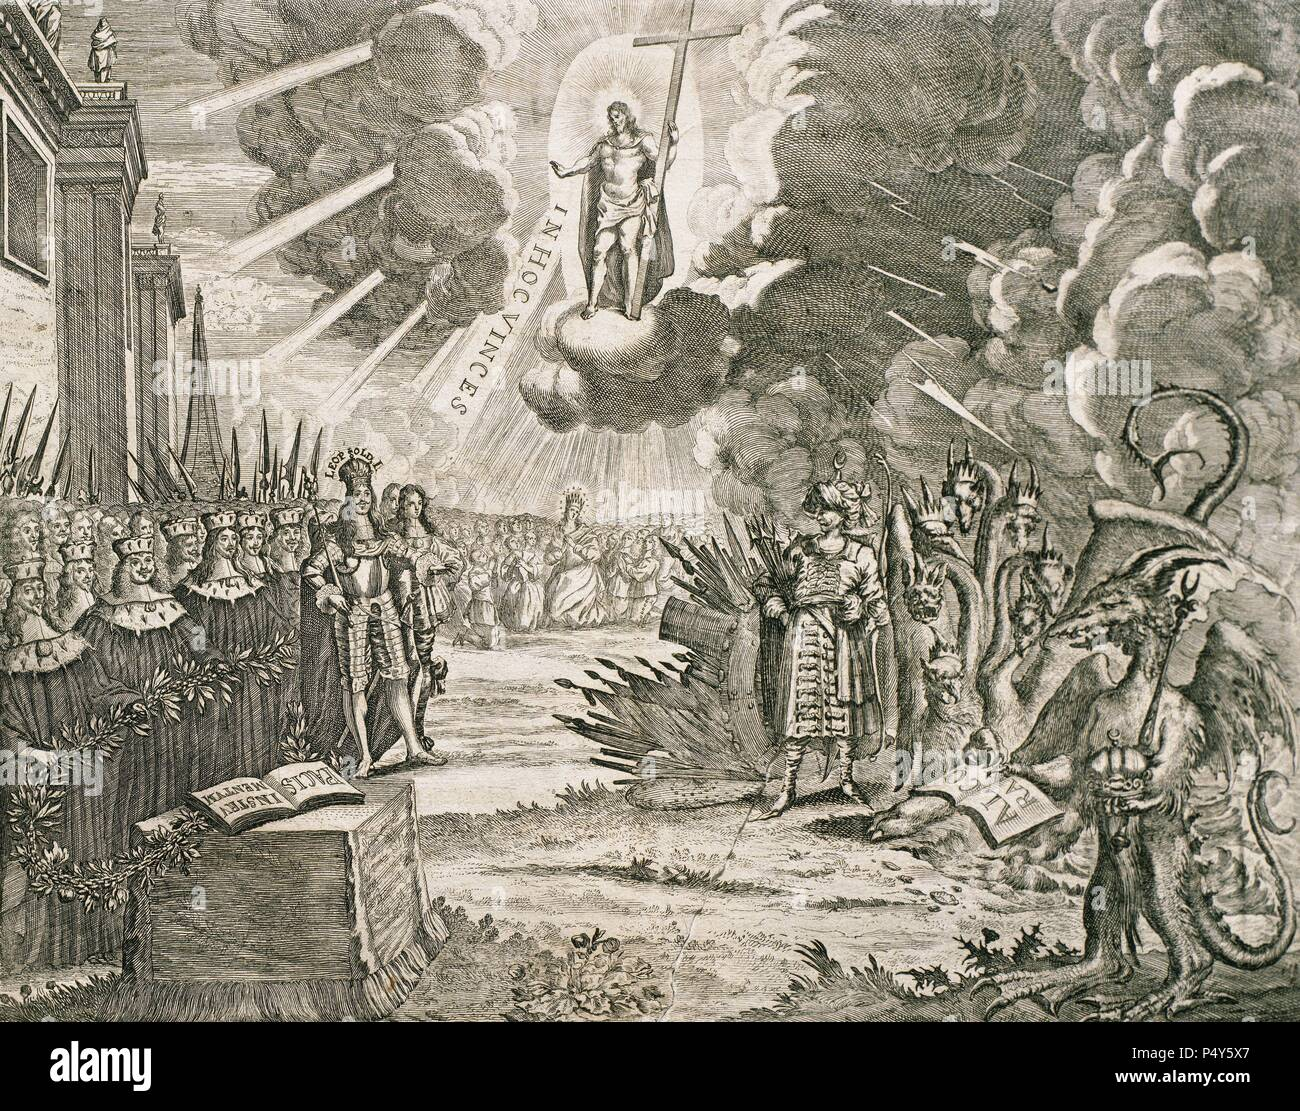 Signed on January 26, 1699 in the Serbian city of Karlowitz (Sremski  Karlovci current) between the Ottoman Empire and the Holy League of 1684.  Engraving.